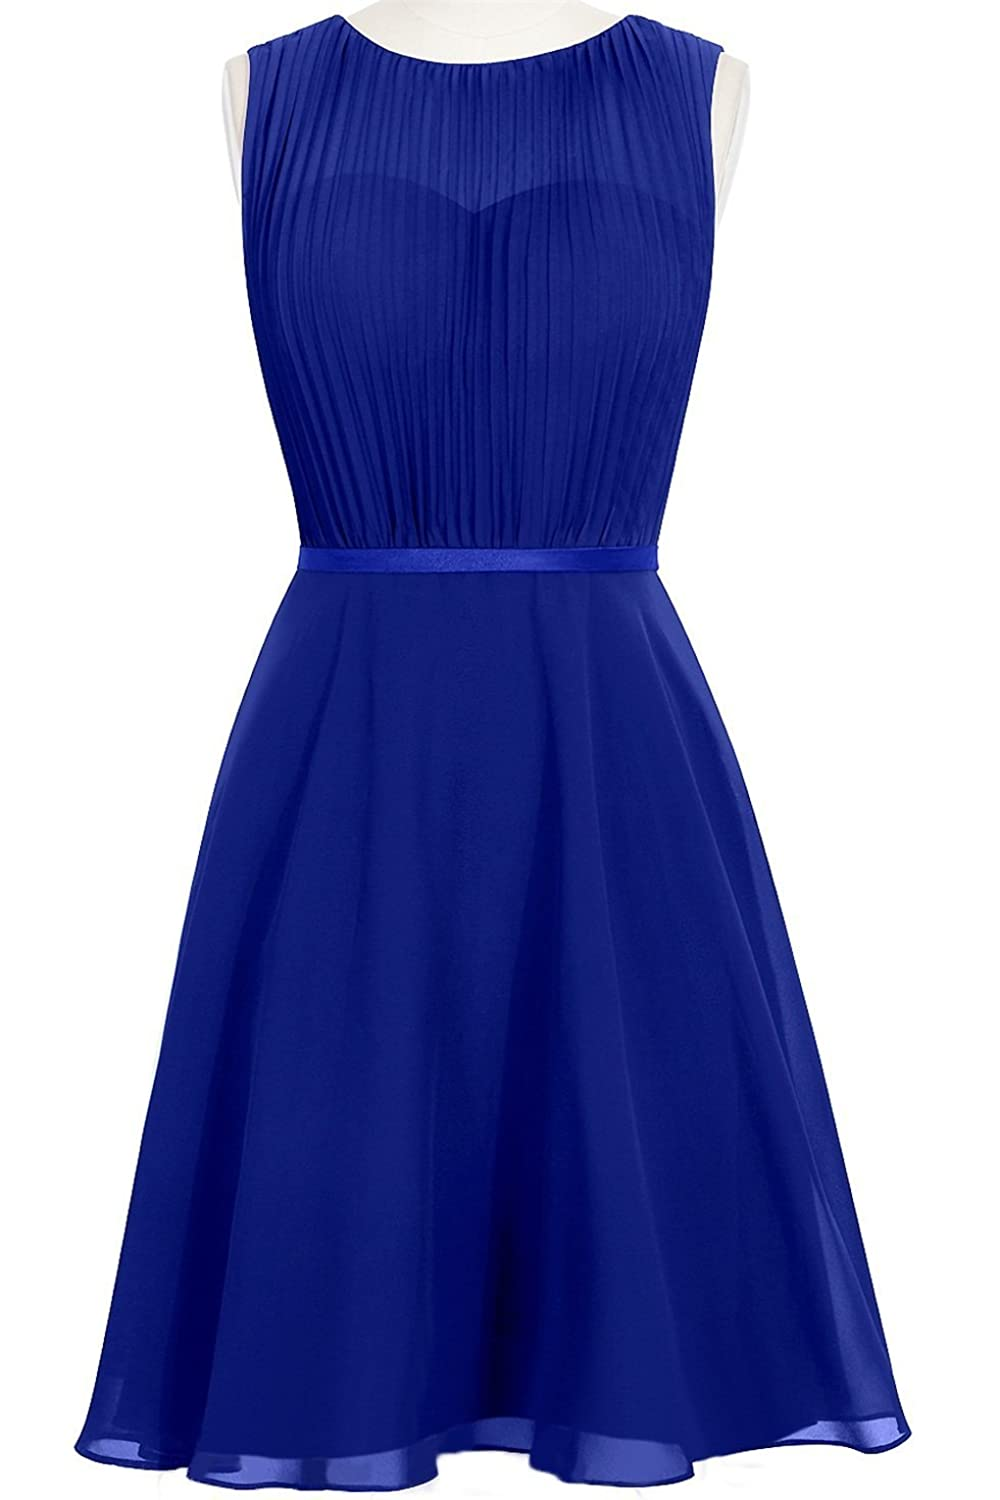 MittyDresses 2015 New Cocktail Homecoming Dresses for Girl Evening Party Size 22W US Royal Blue